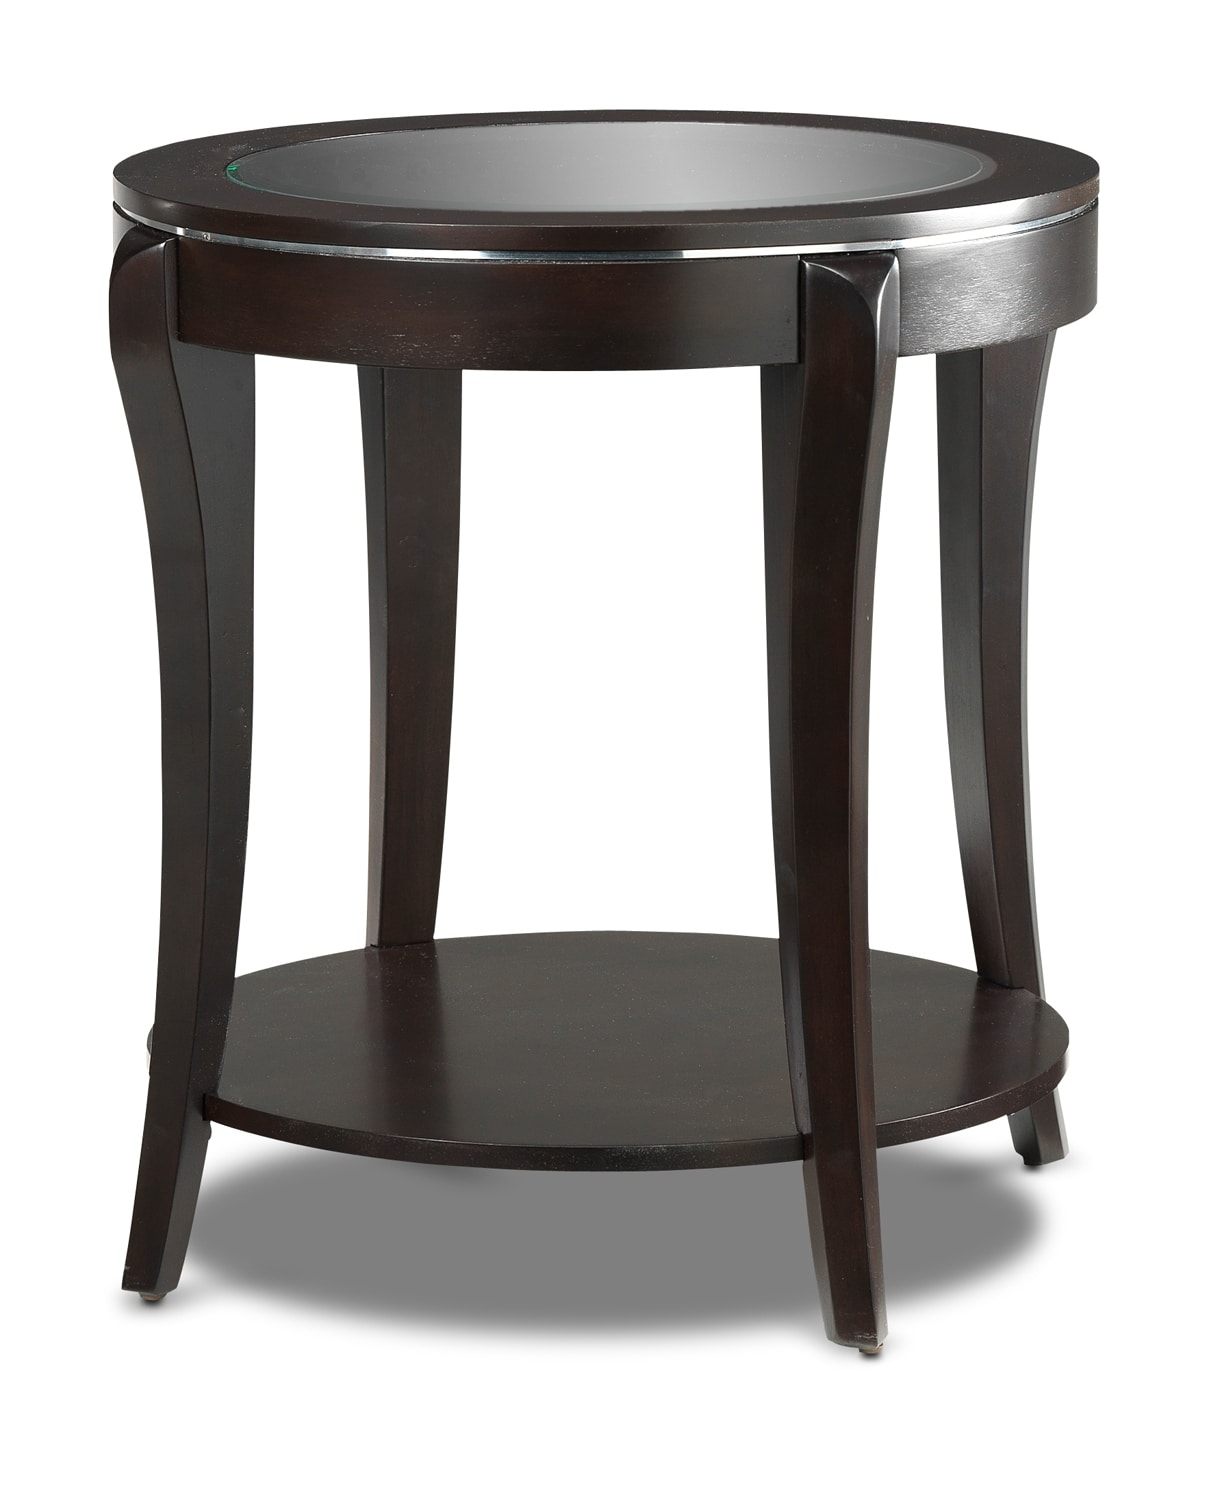 Taurus End Table - Espresso